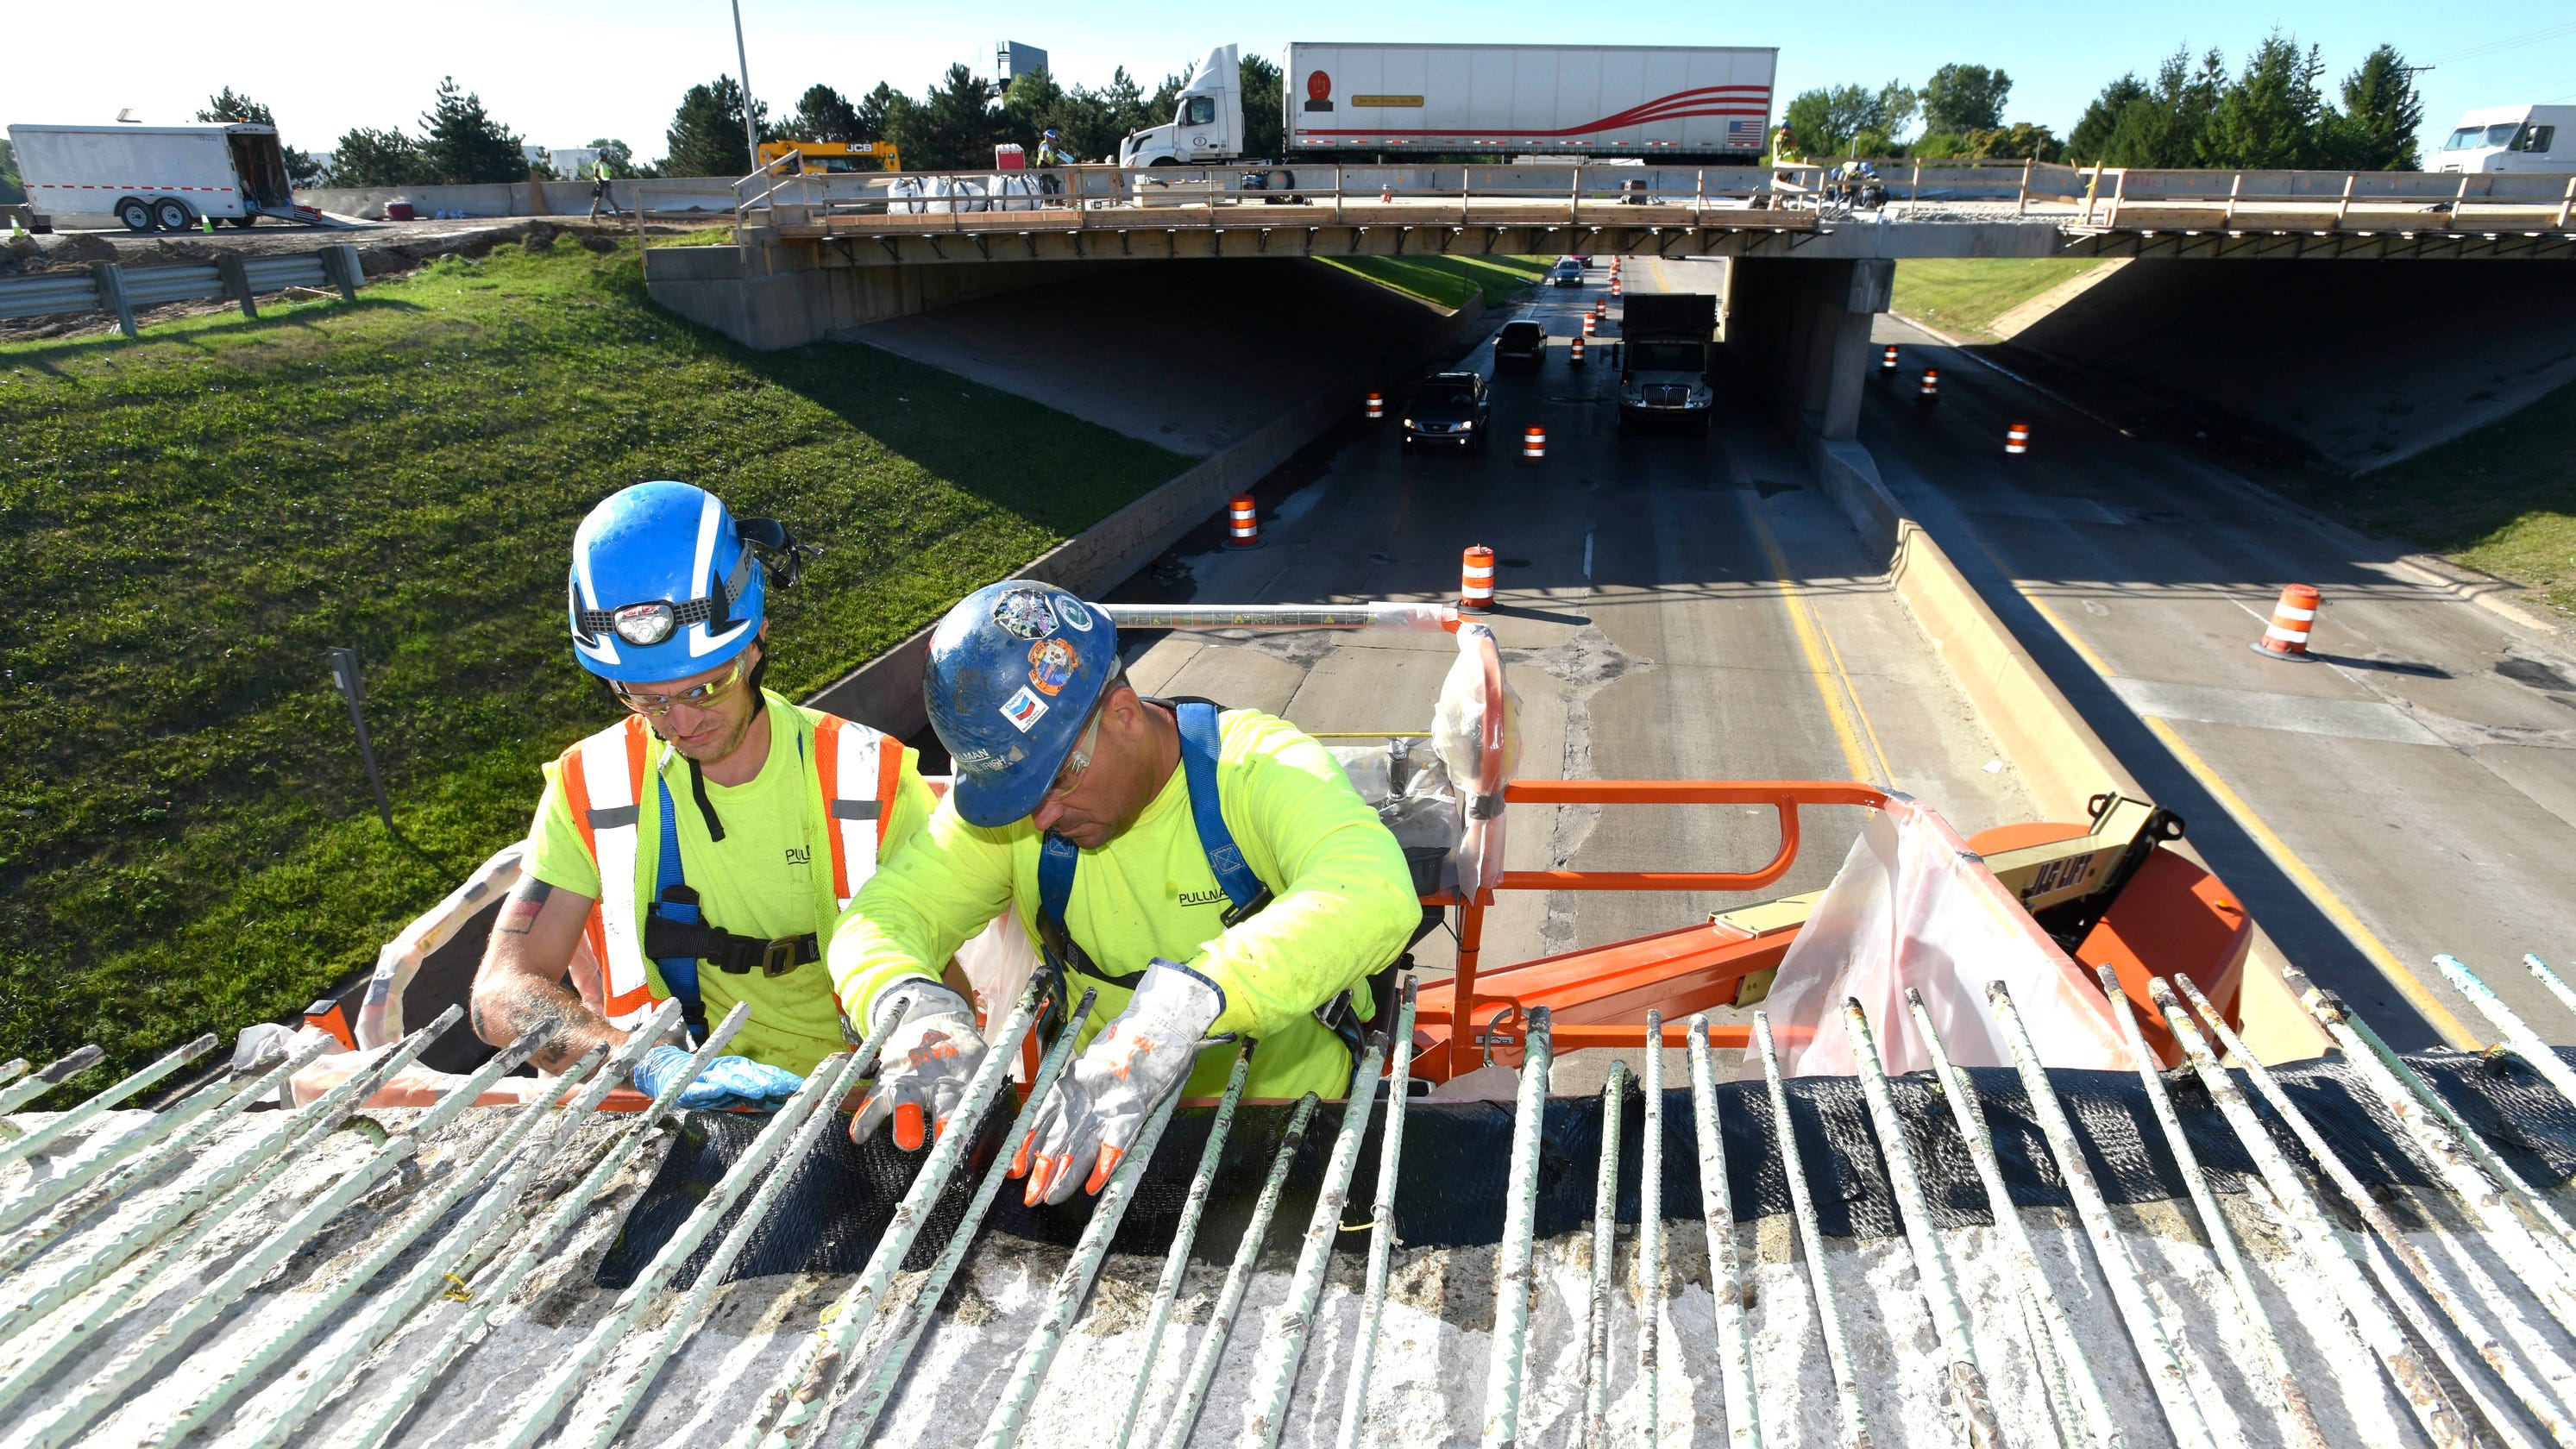 More spending on Michigan roads blunted by rising costs